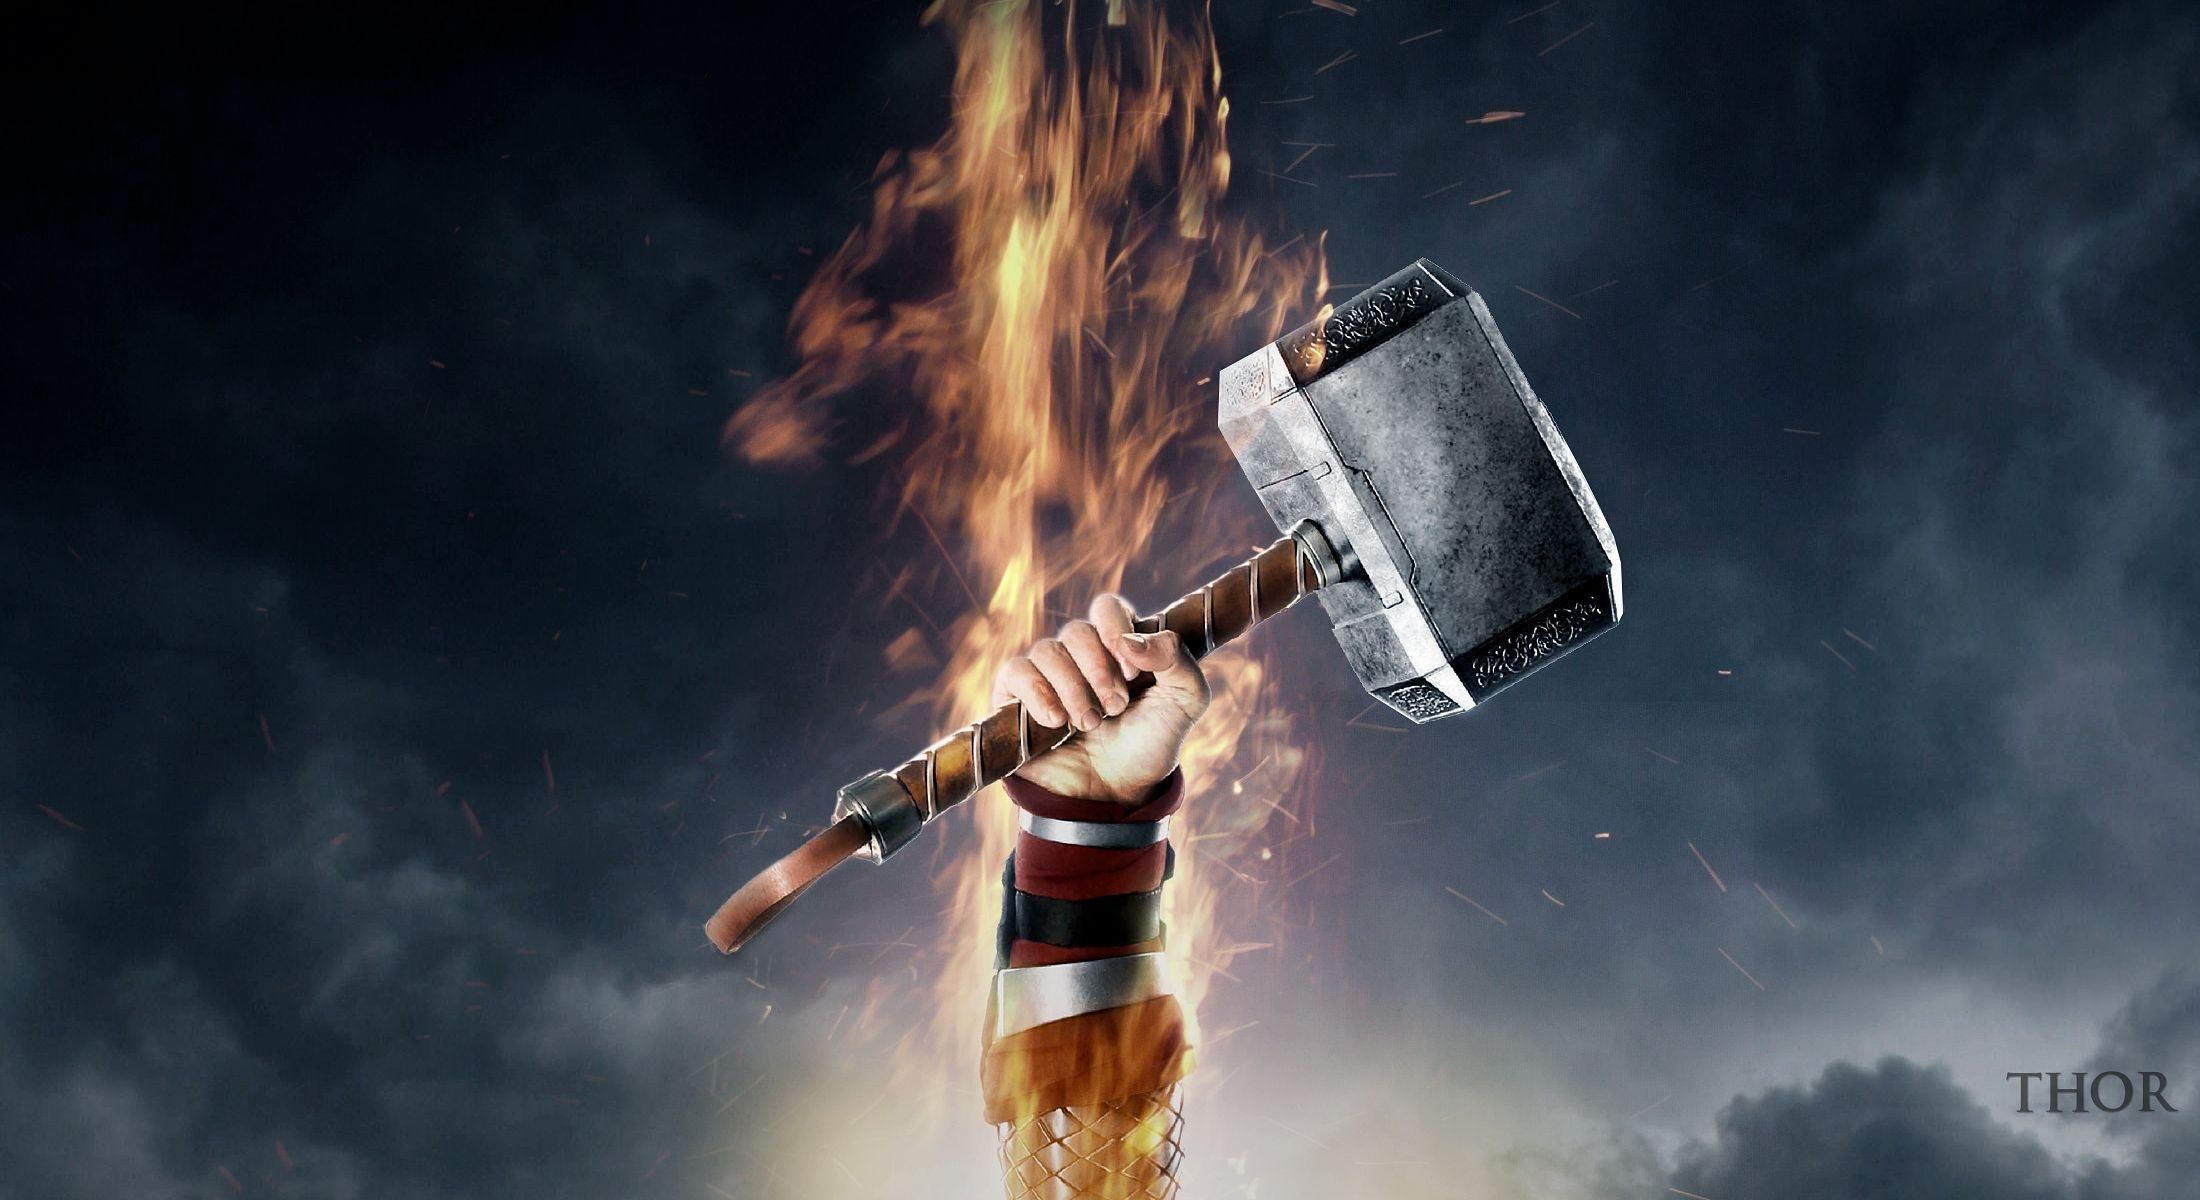 53 thor hd wallpapers | background images - wallpaper abyss